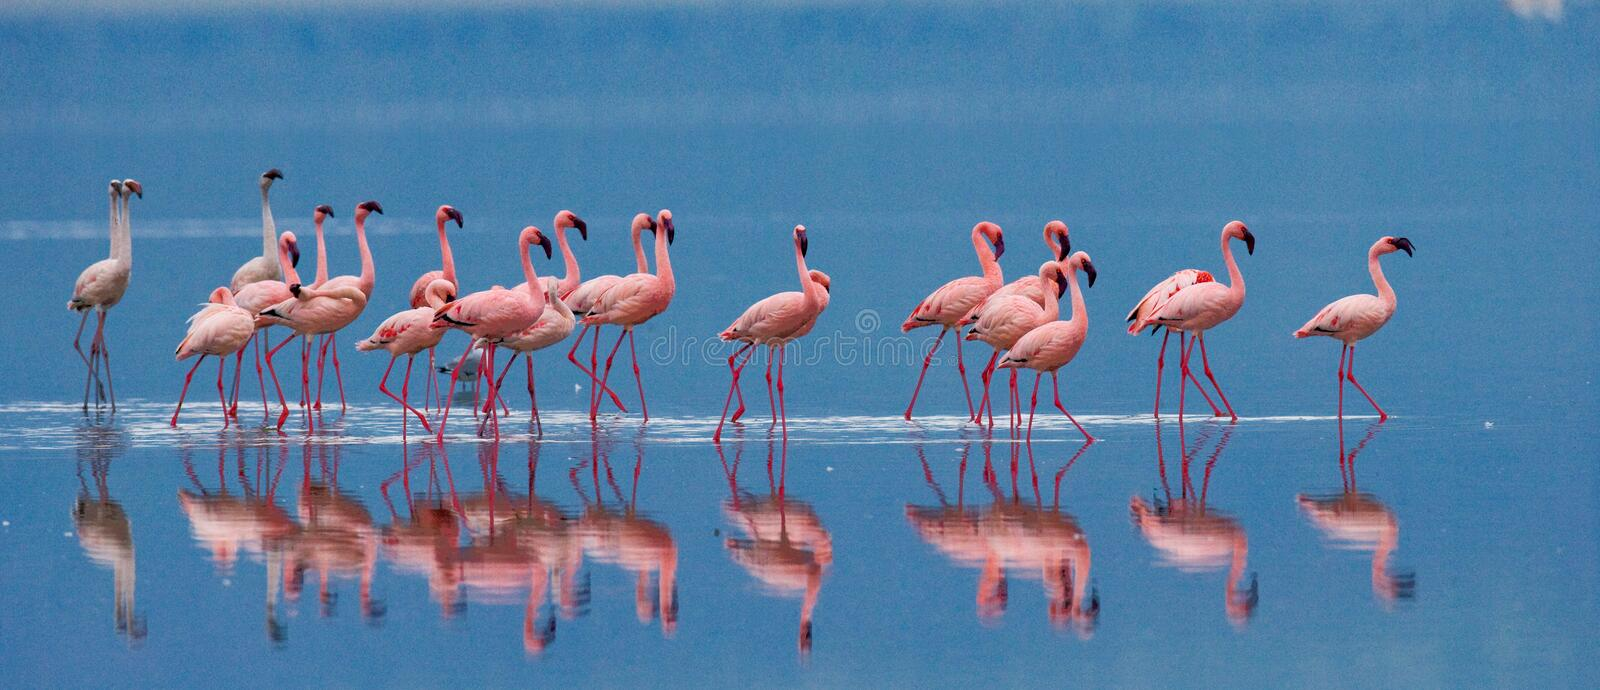 Flamingos on the lake with reflection. Kenya. Africa. Nakuru National Park. Lake Bogoria National Reserve. An excellent illustration royalty free stock image